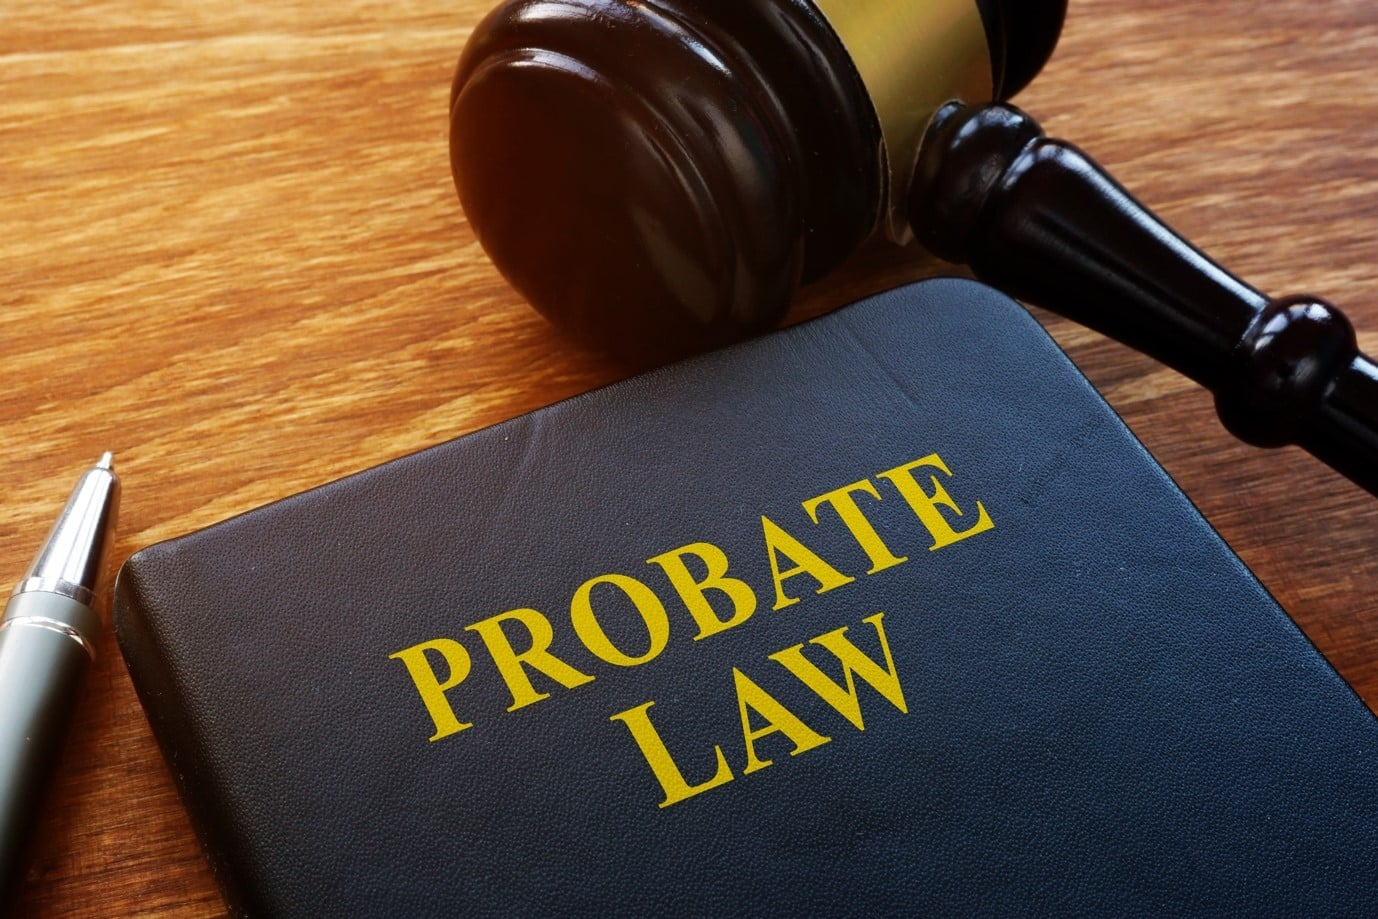 A book titled probate law lying on a desk with a gravel